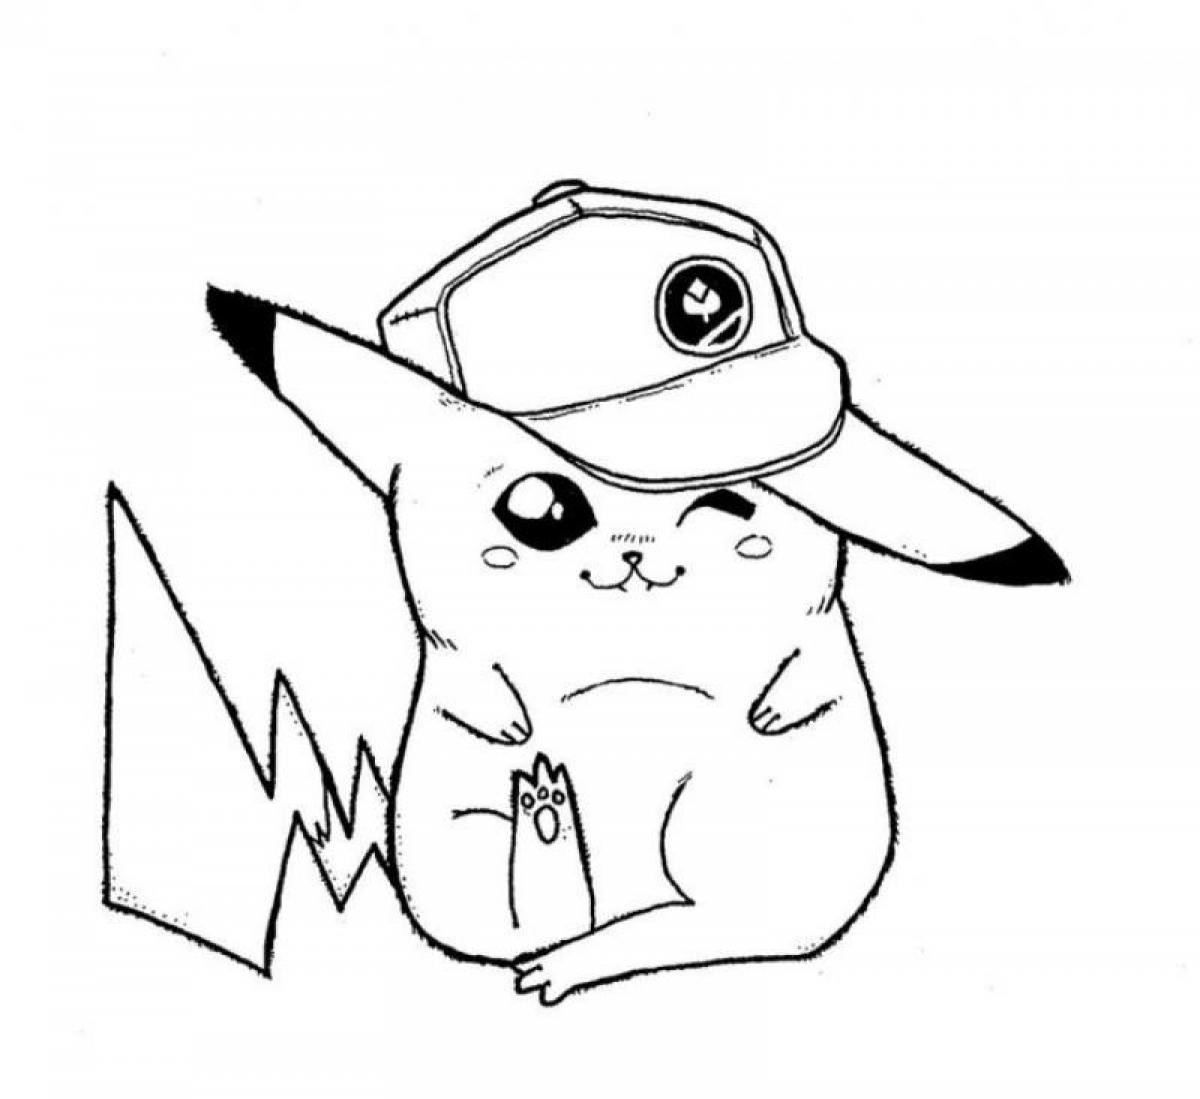 pikachu cute pokemon coloring pages cute pikachu coloring pages at getdrawings free download coloring pages cute pikachu pokemon